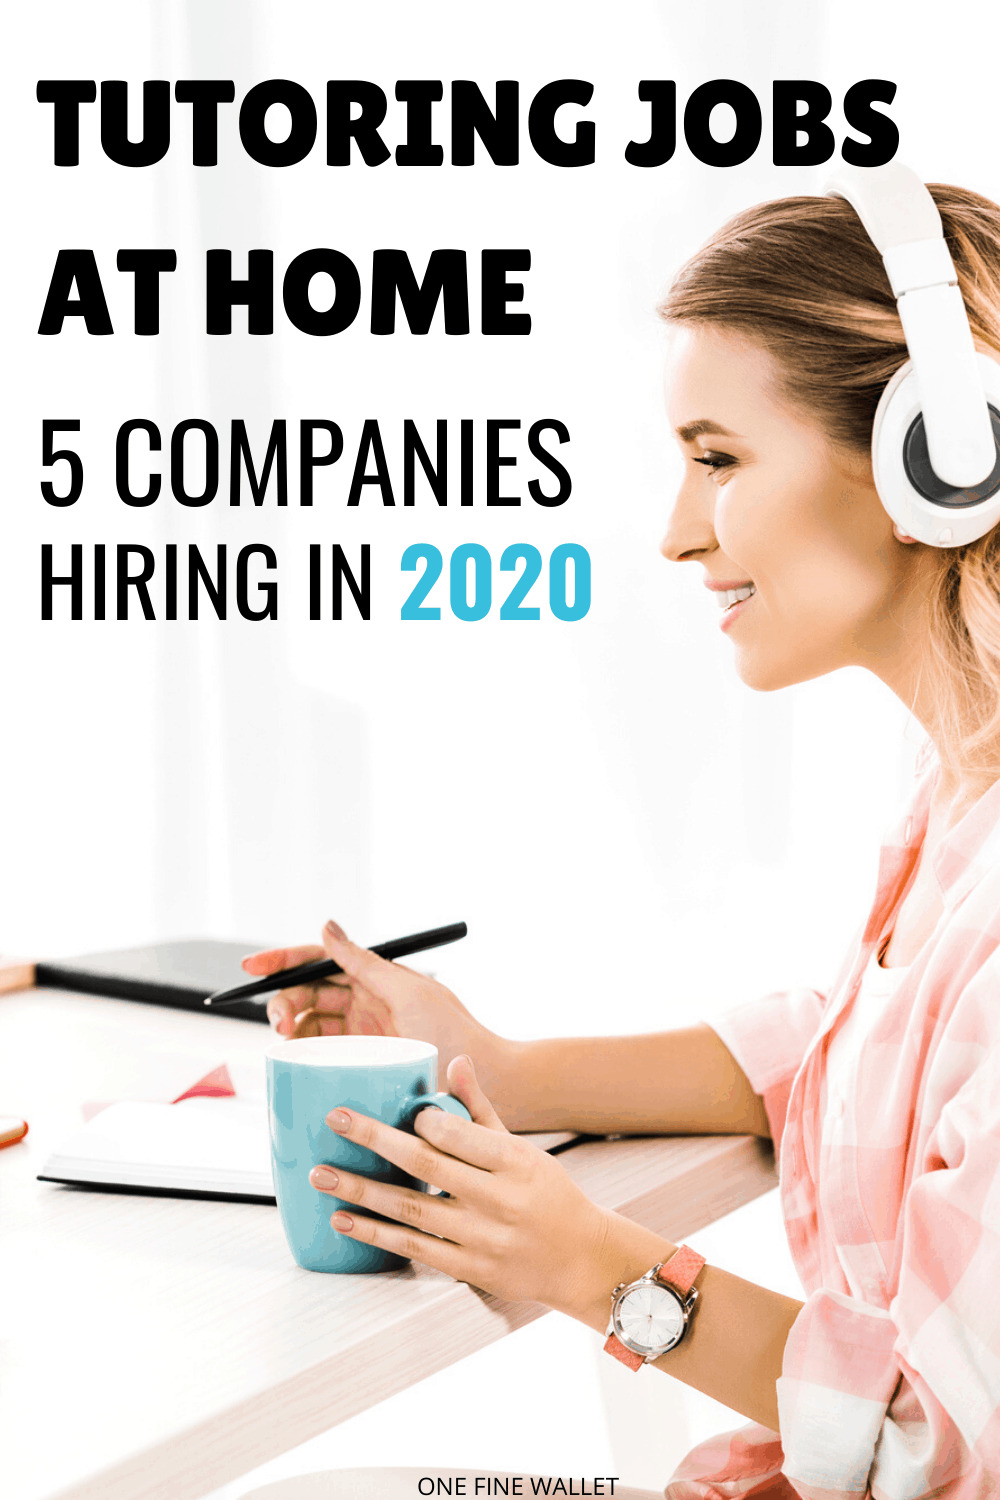 Online tutoring jobs from home. Make money online with these teaching jobs that are hiring